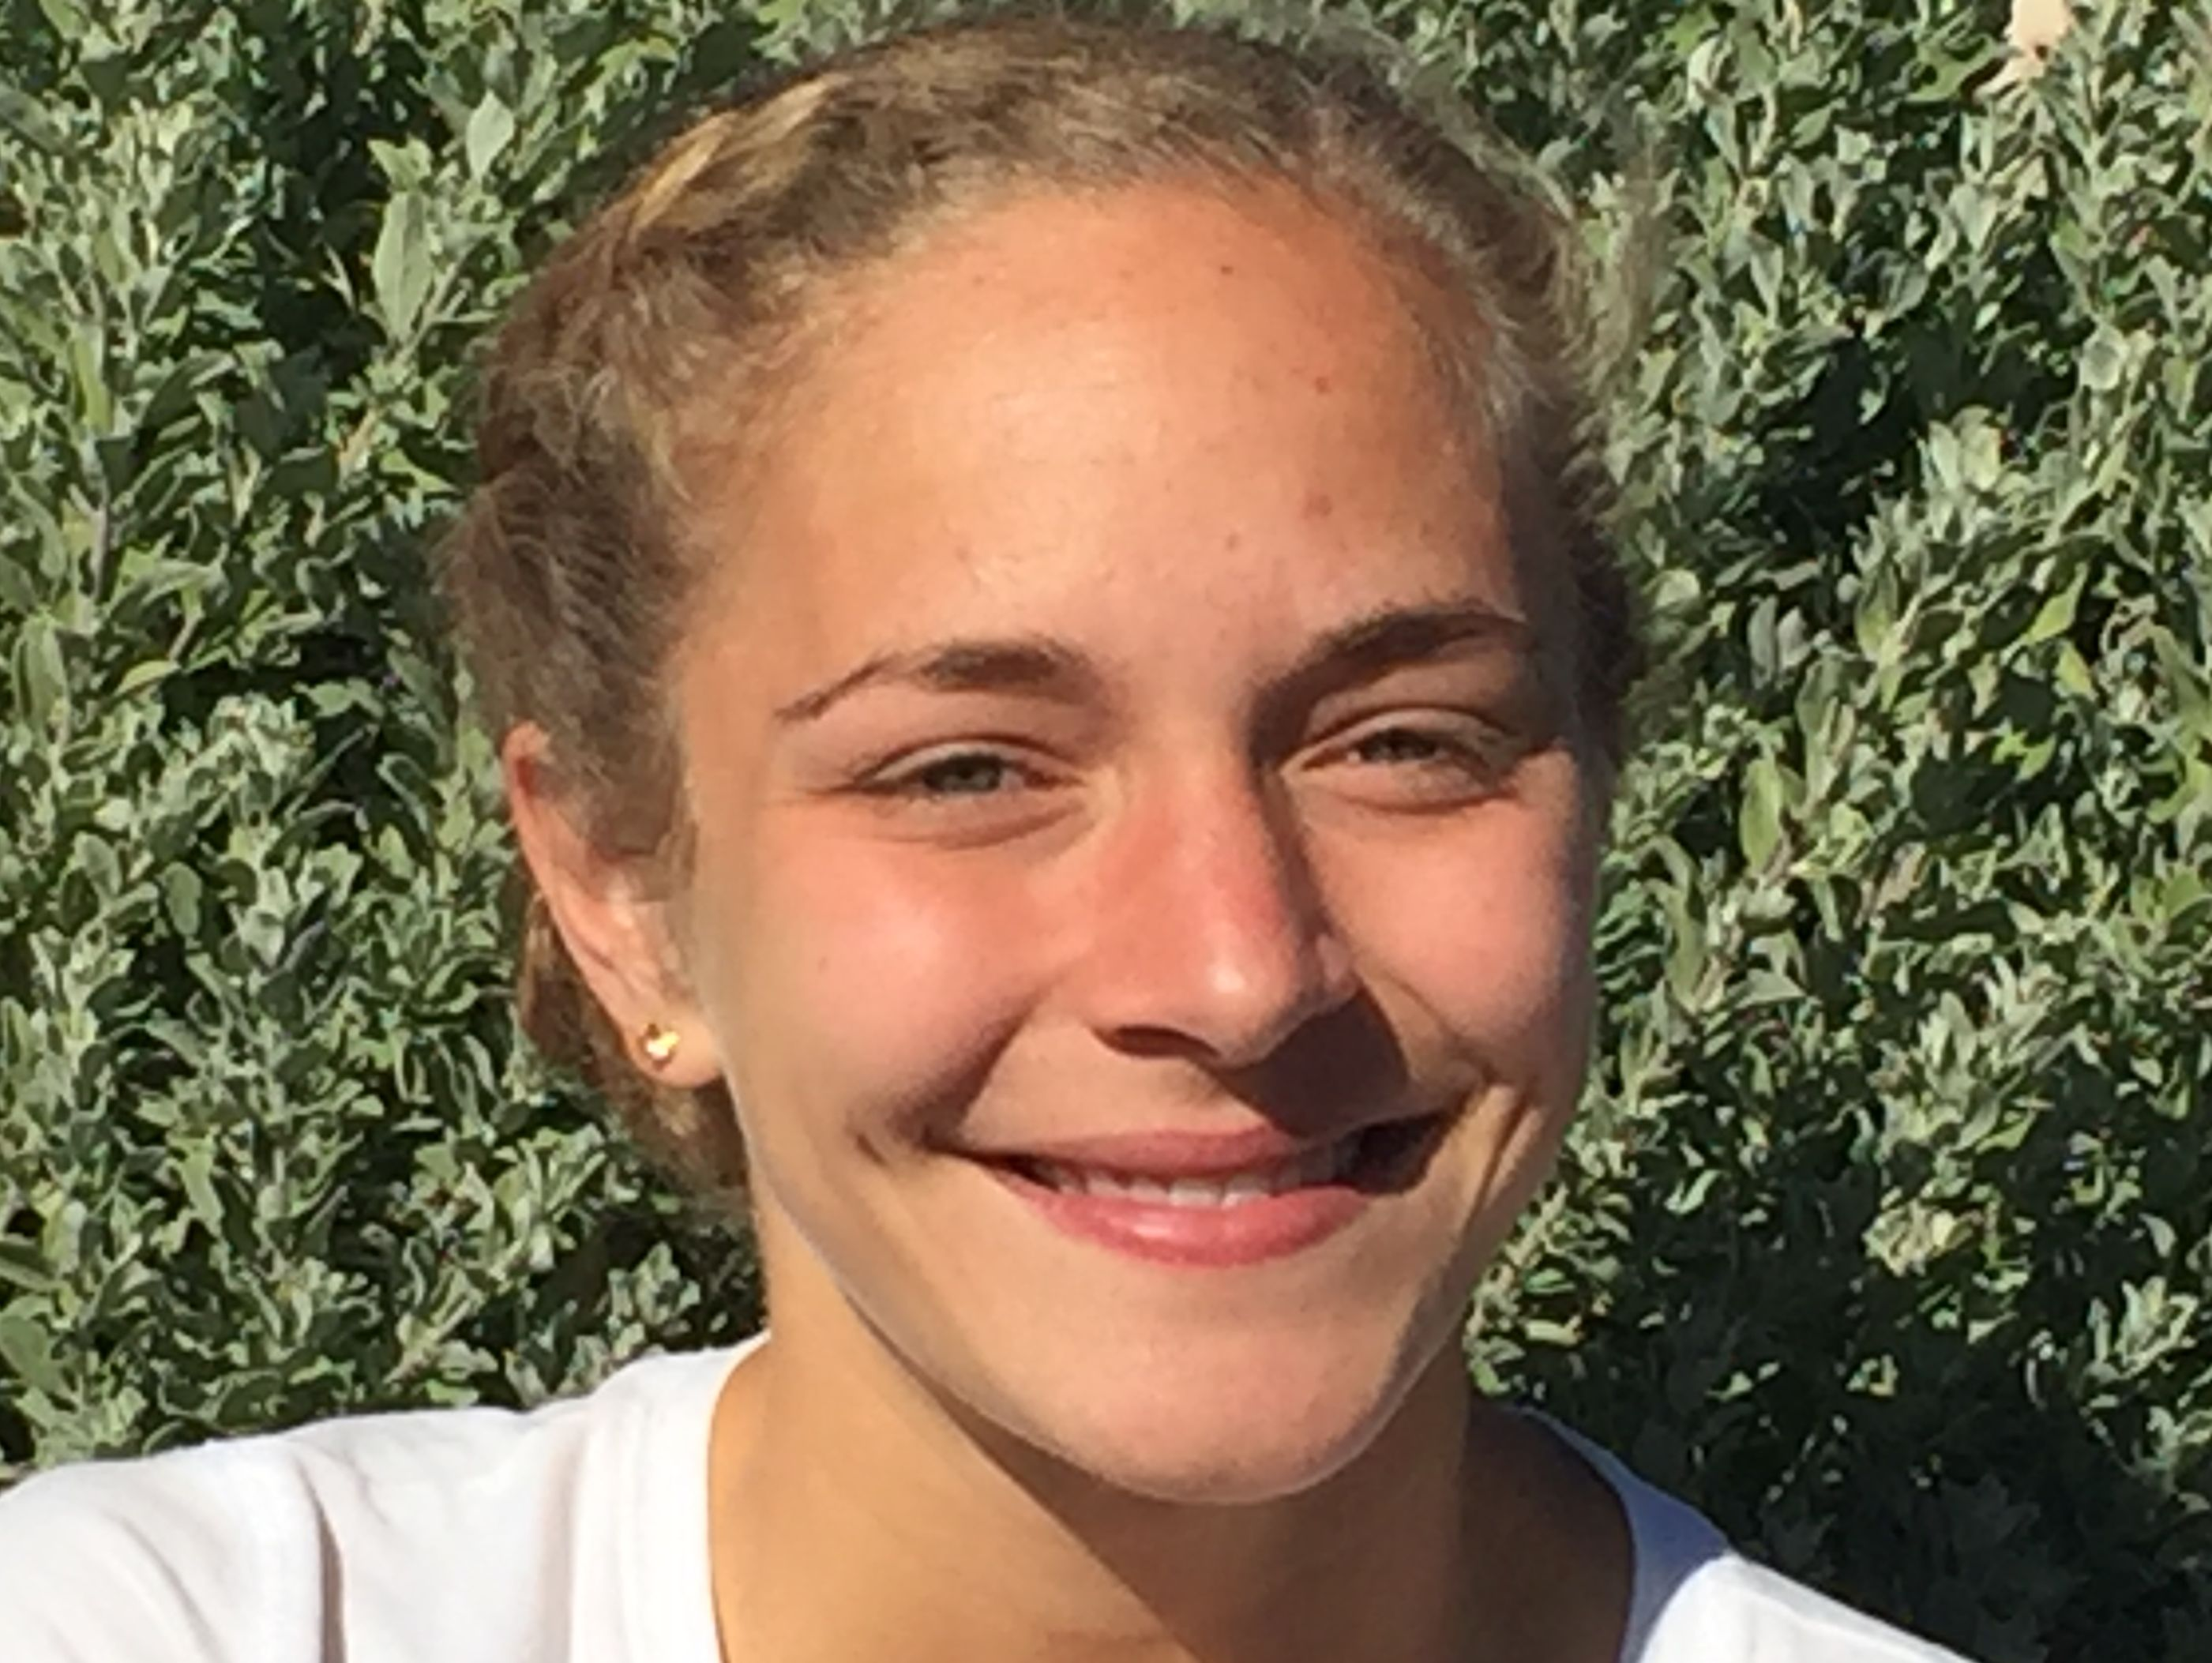 Allie Schadler, from Rio Rico High School, is azcentral sports' Female Athlete of the Week for Nov. 5-12.